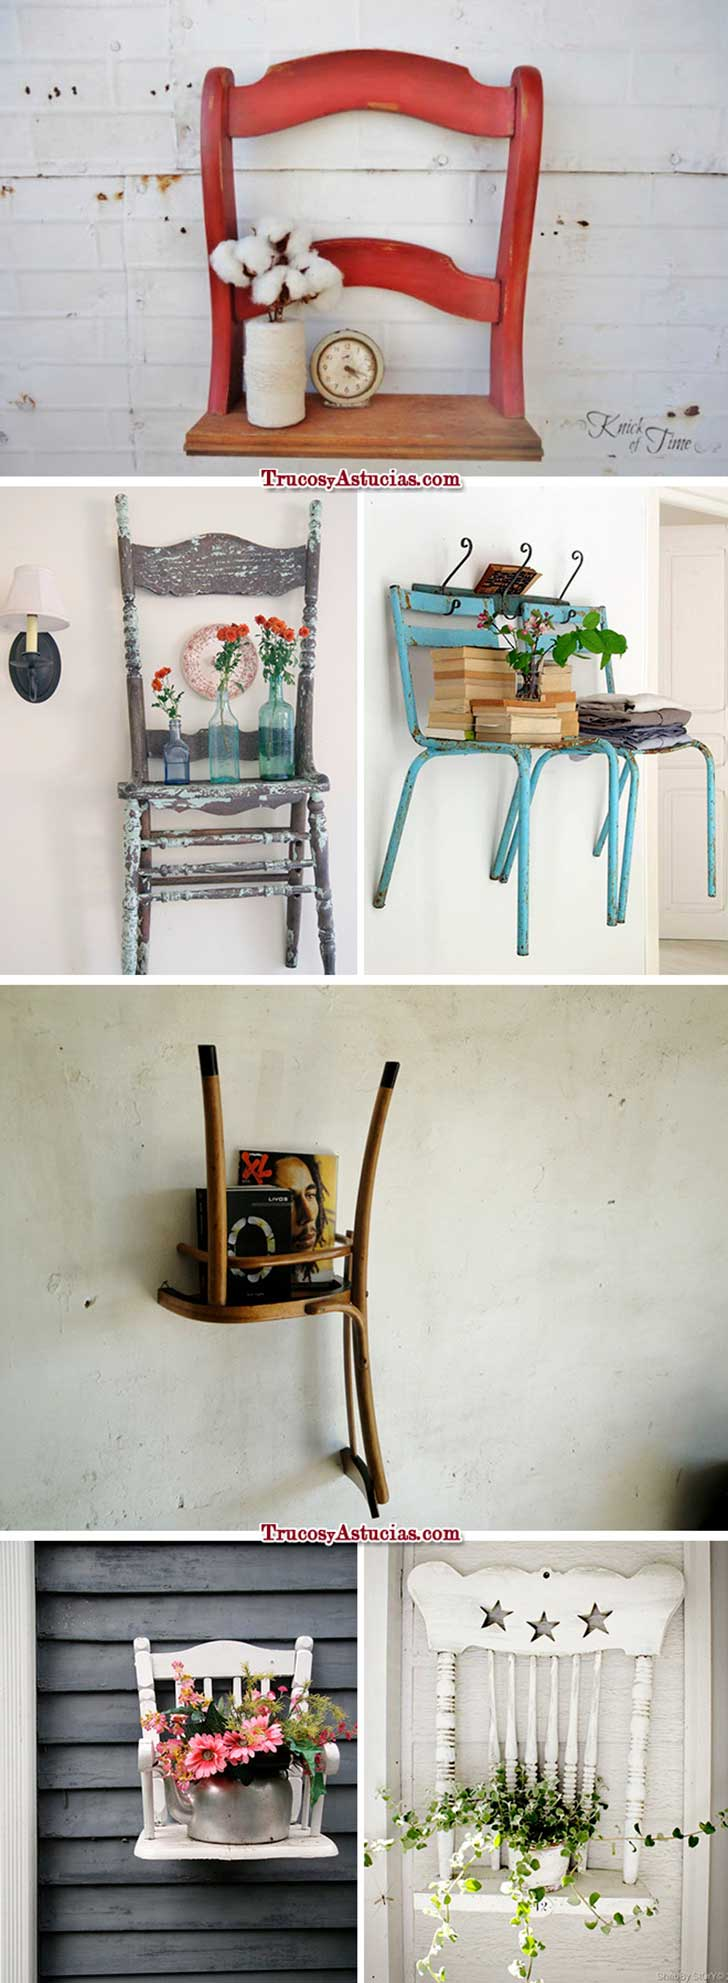 Muebles reciclados y originales on pinterest ideas para for Muebles originales